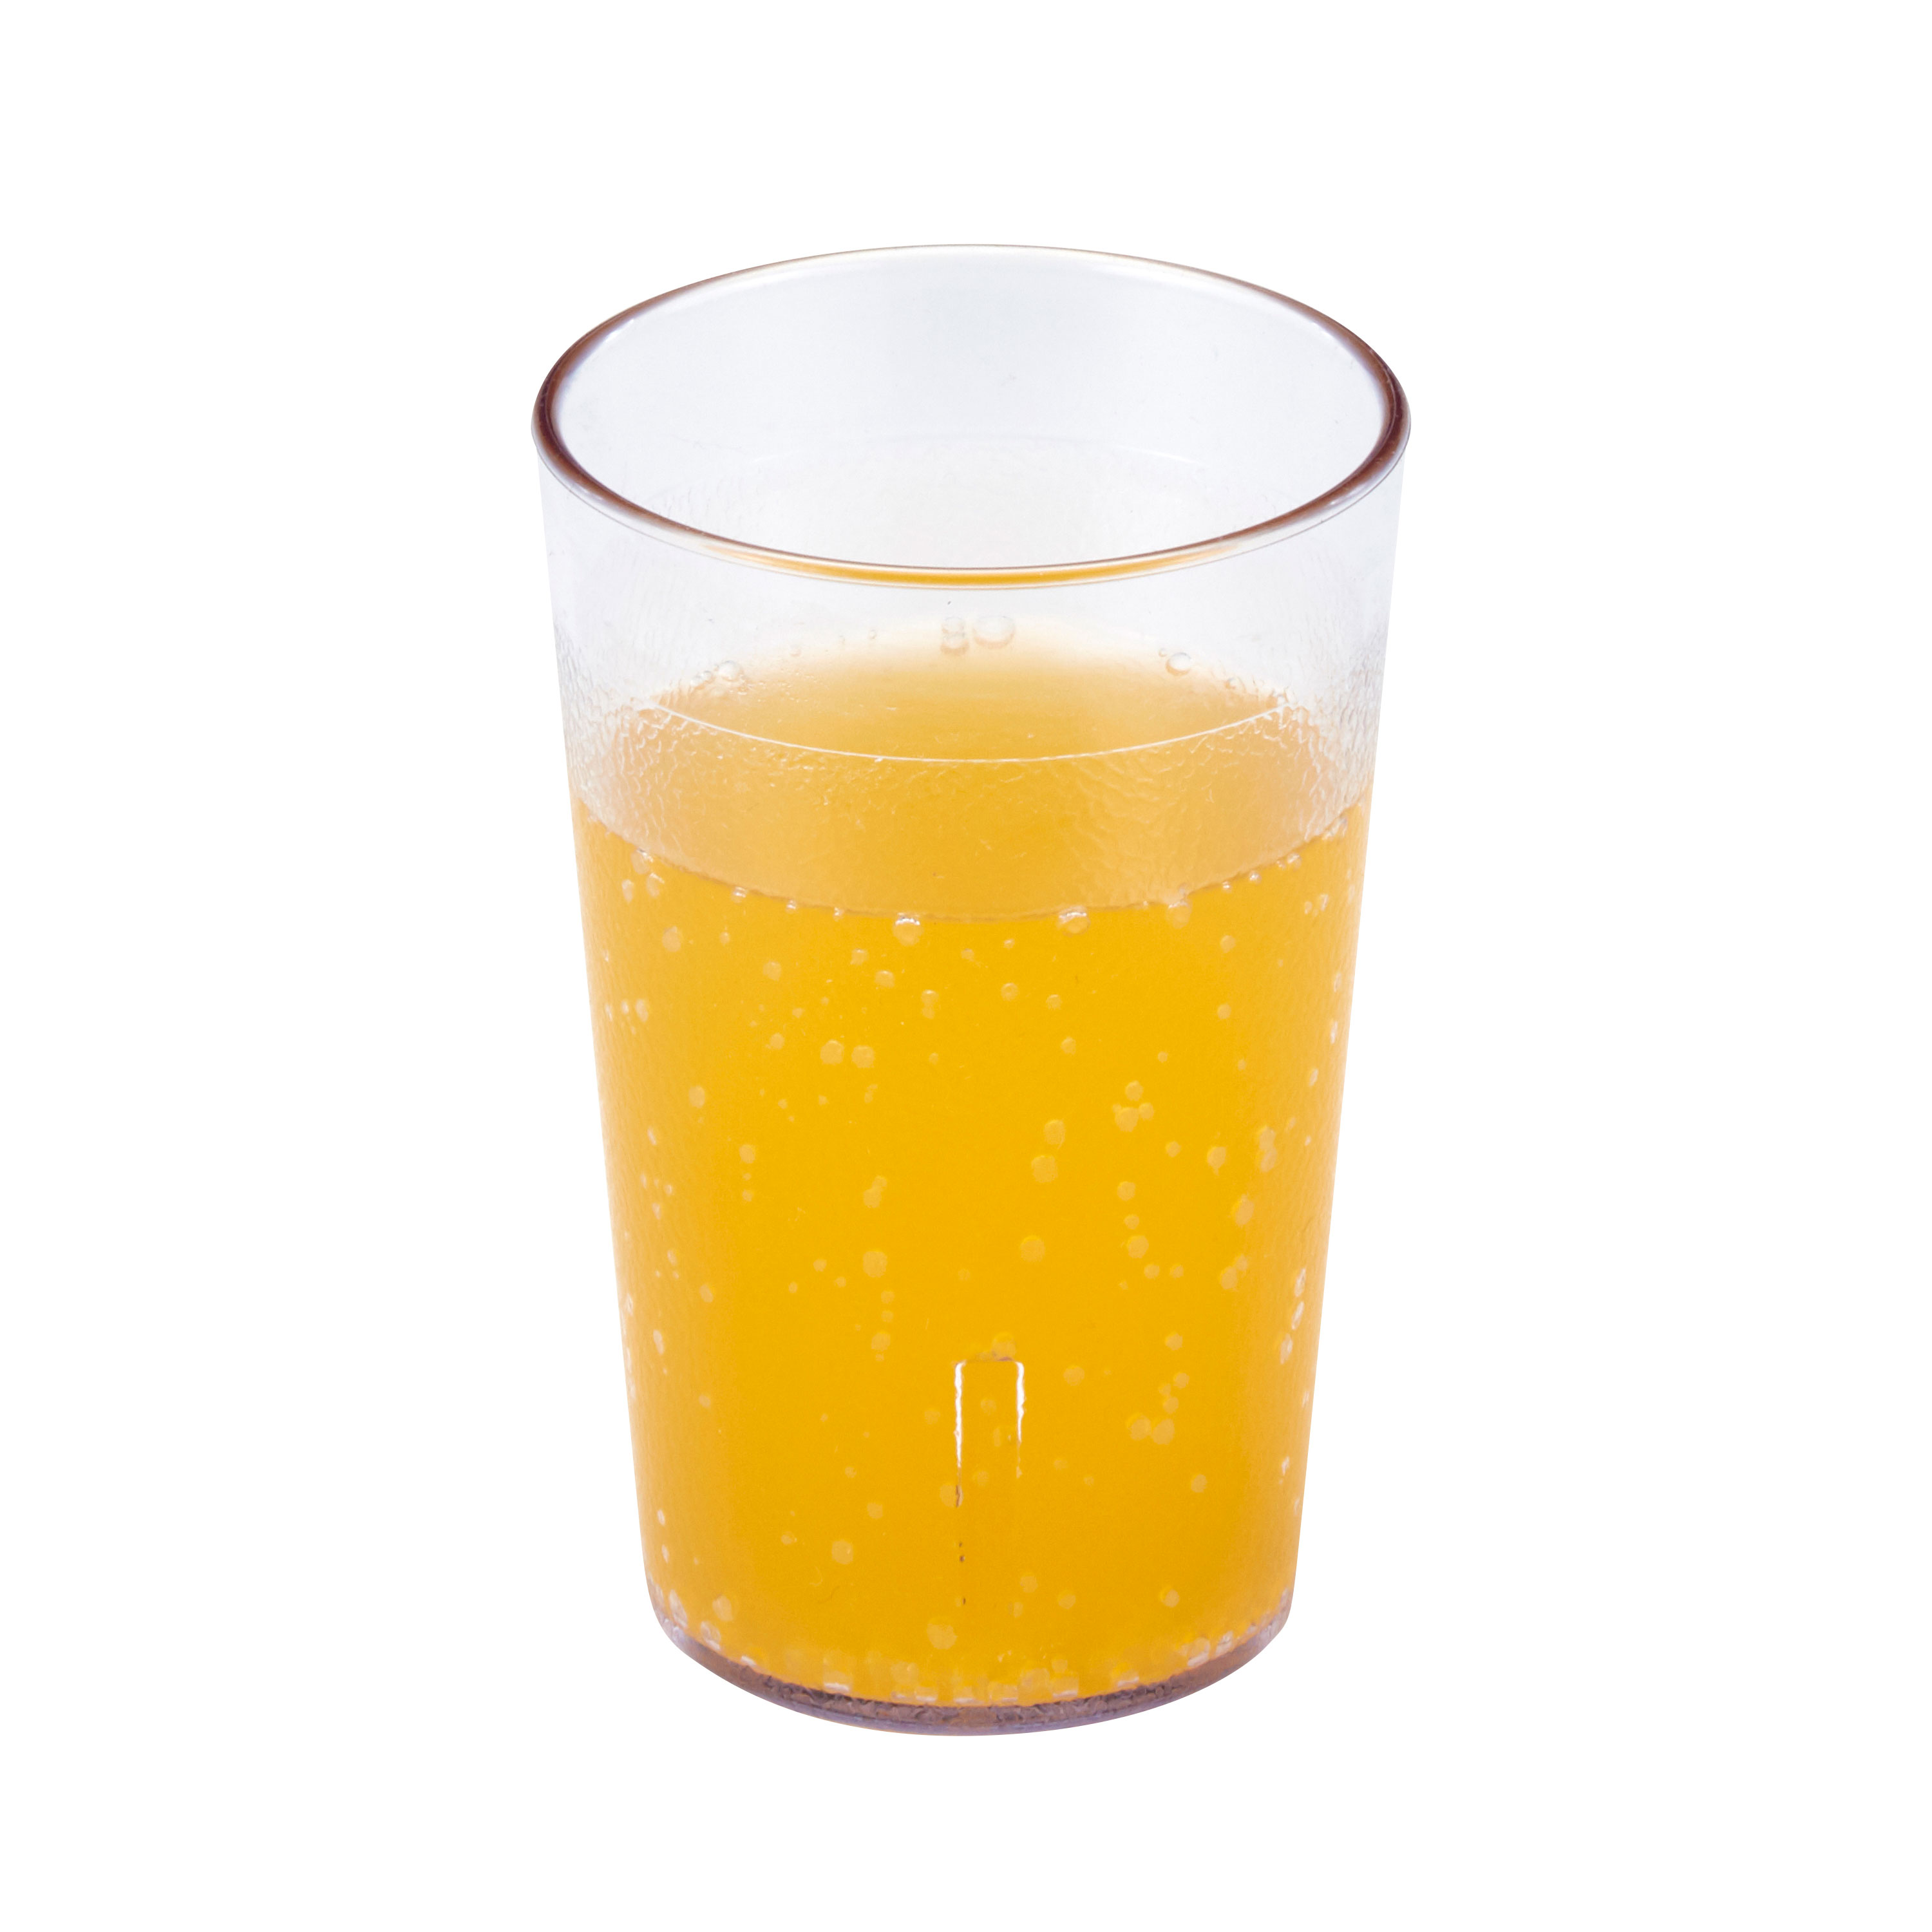 Cambro 800P152 serving/drinking glasses